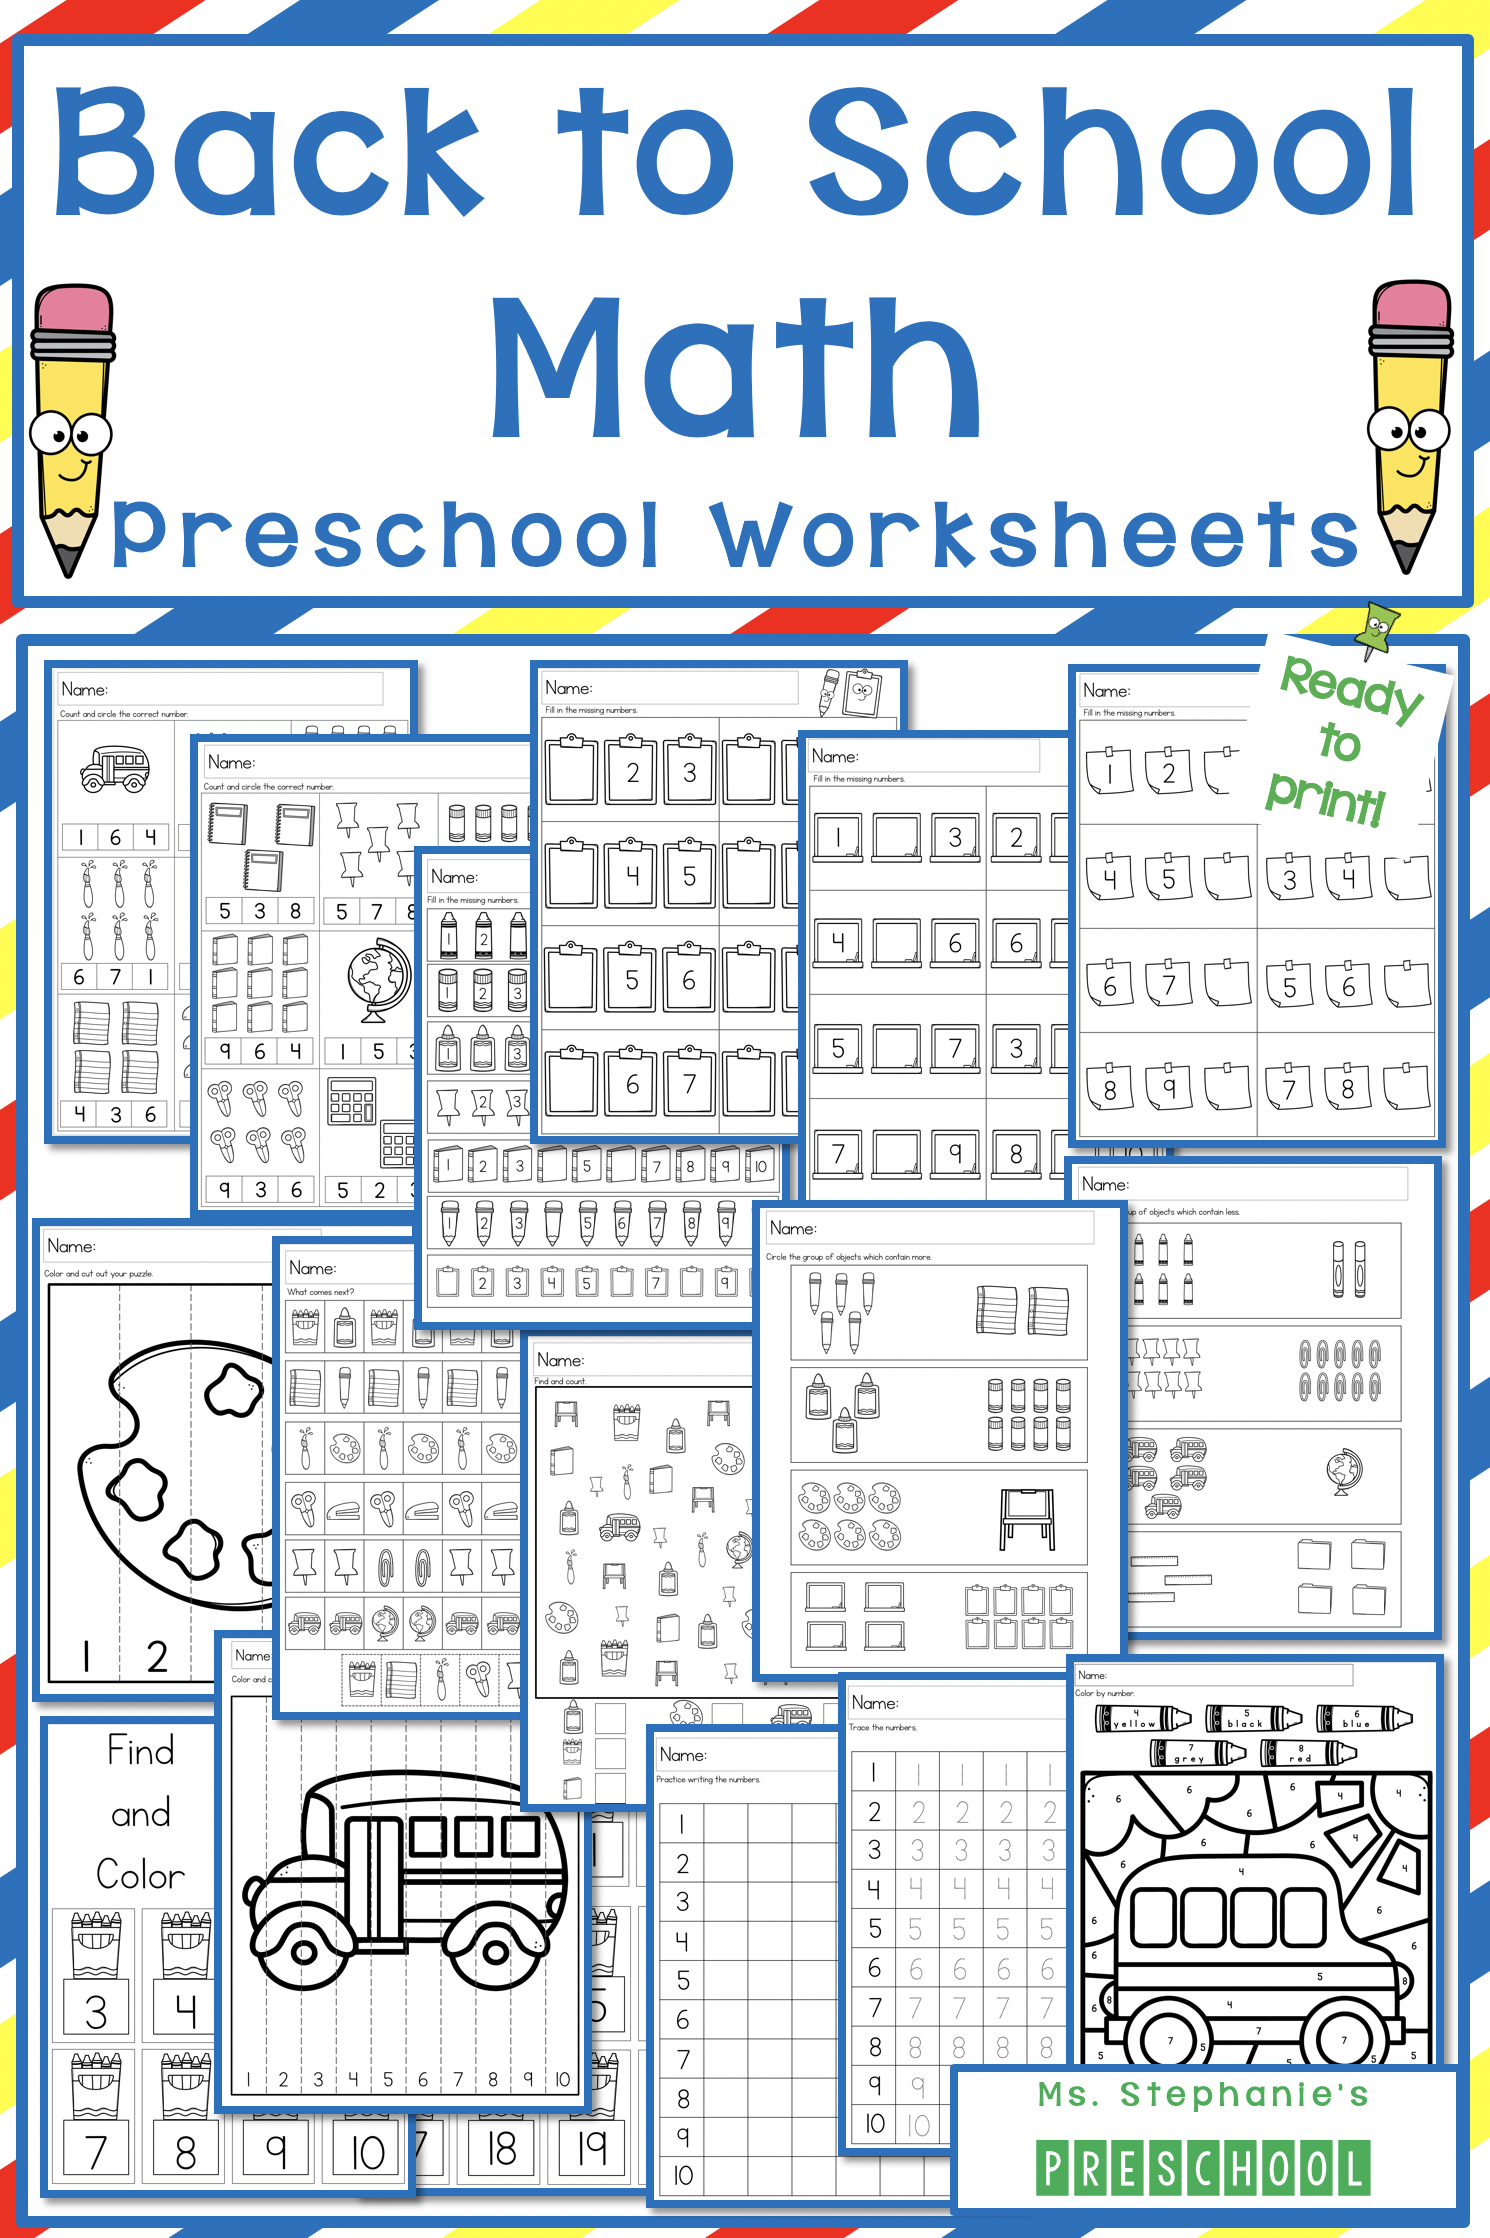 Back To School Math Preschool Worksheets In